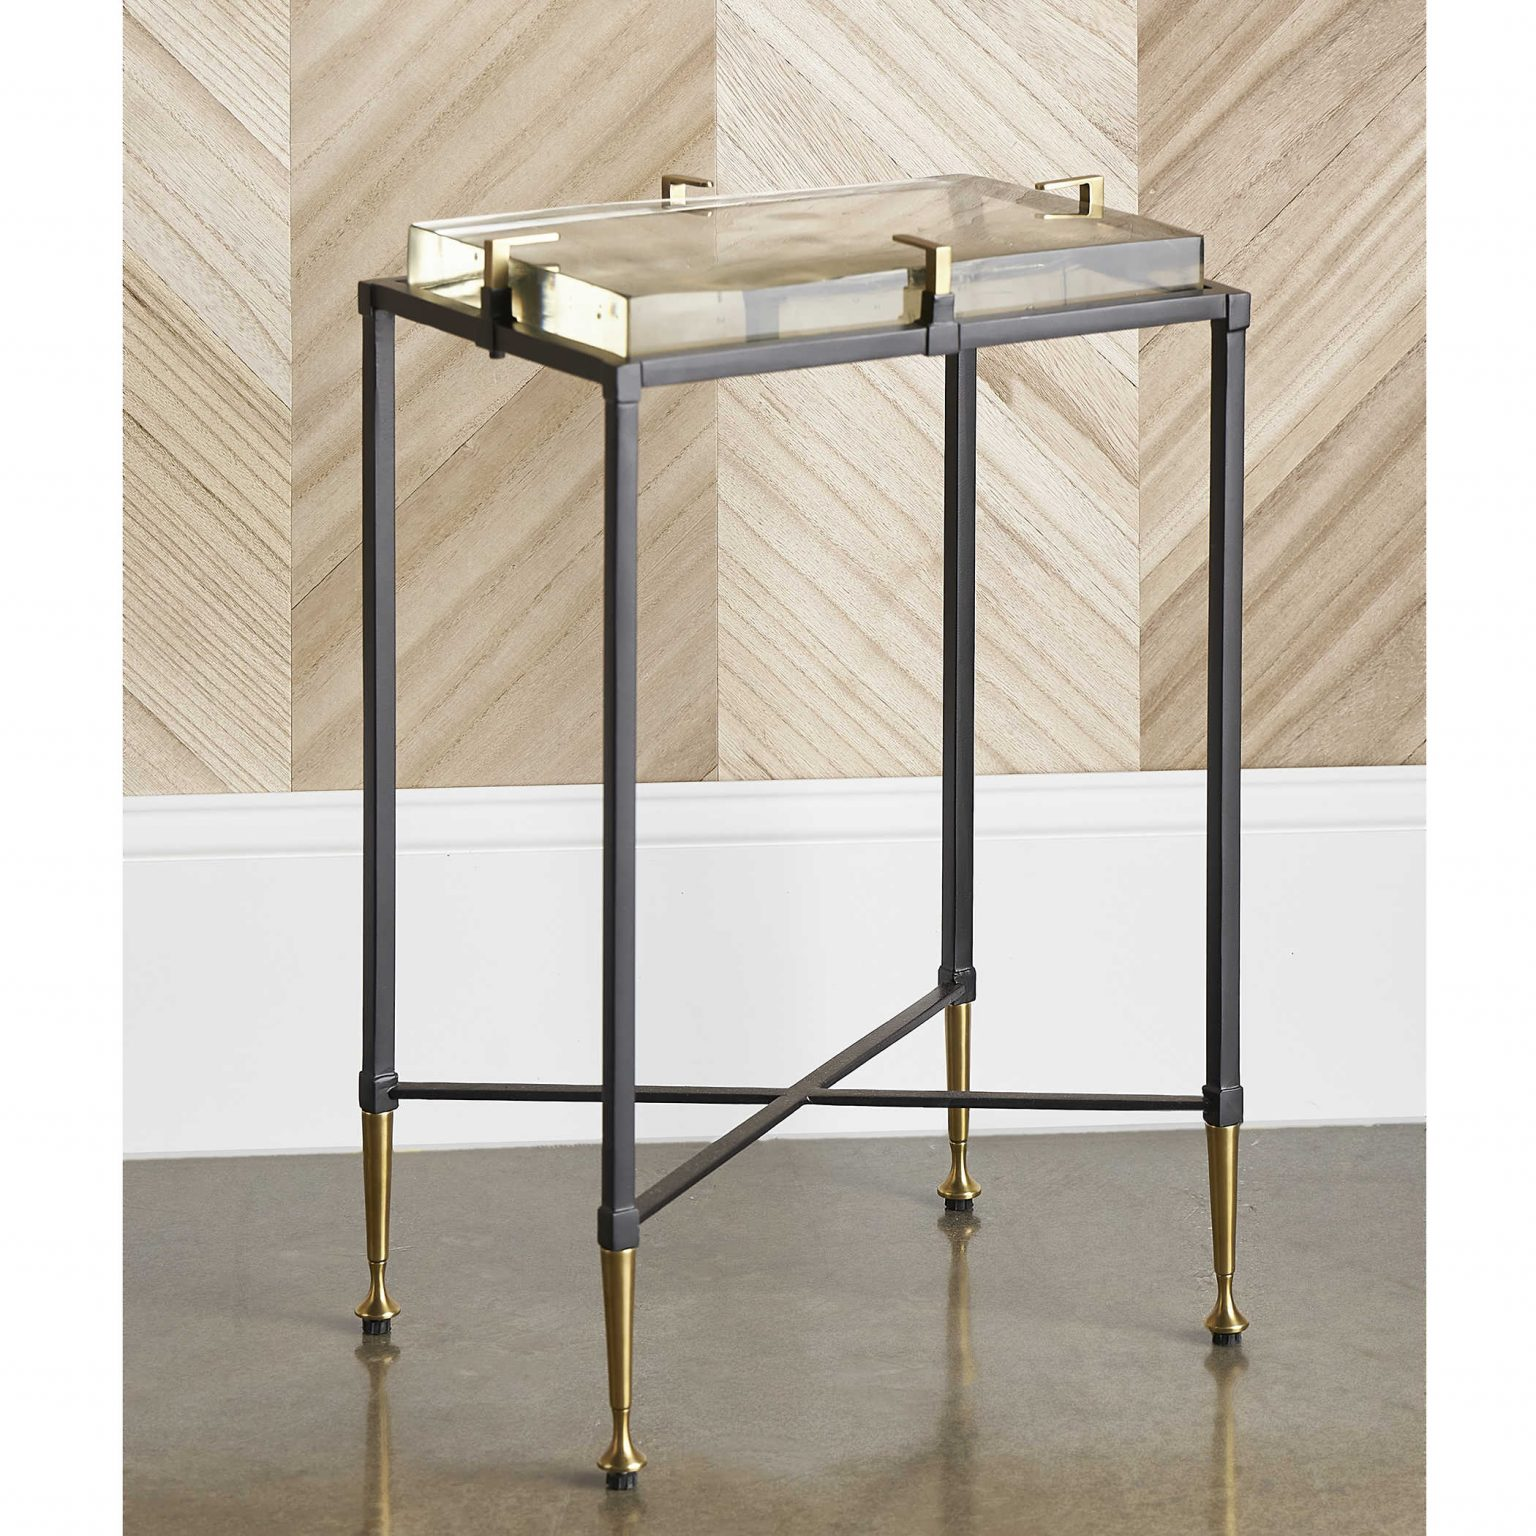 Retro-inspired accent table with brass and lucite details